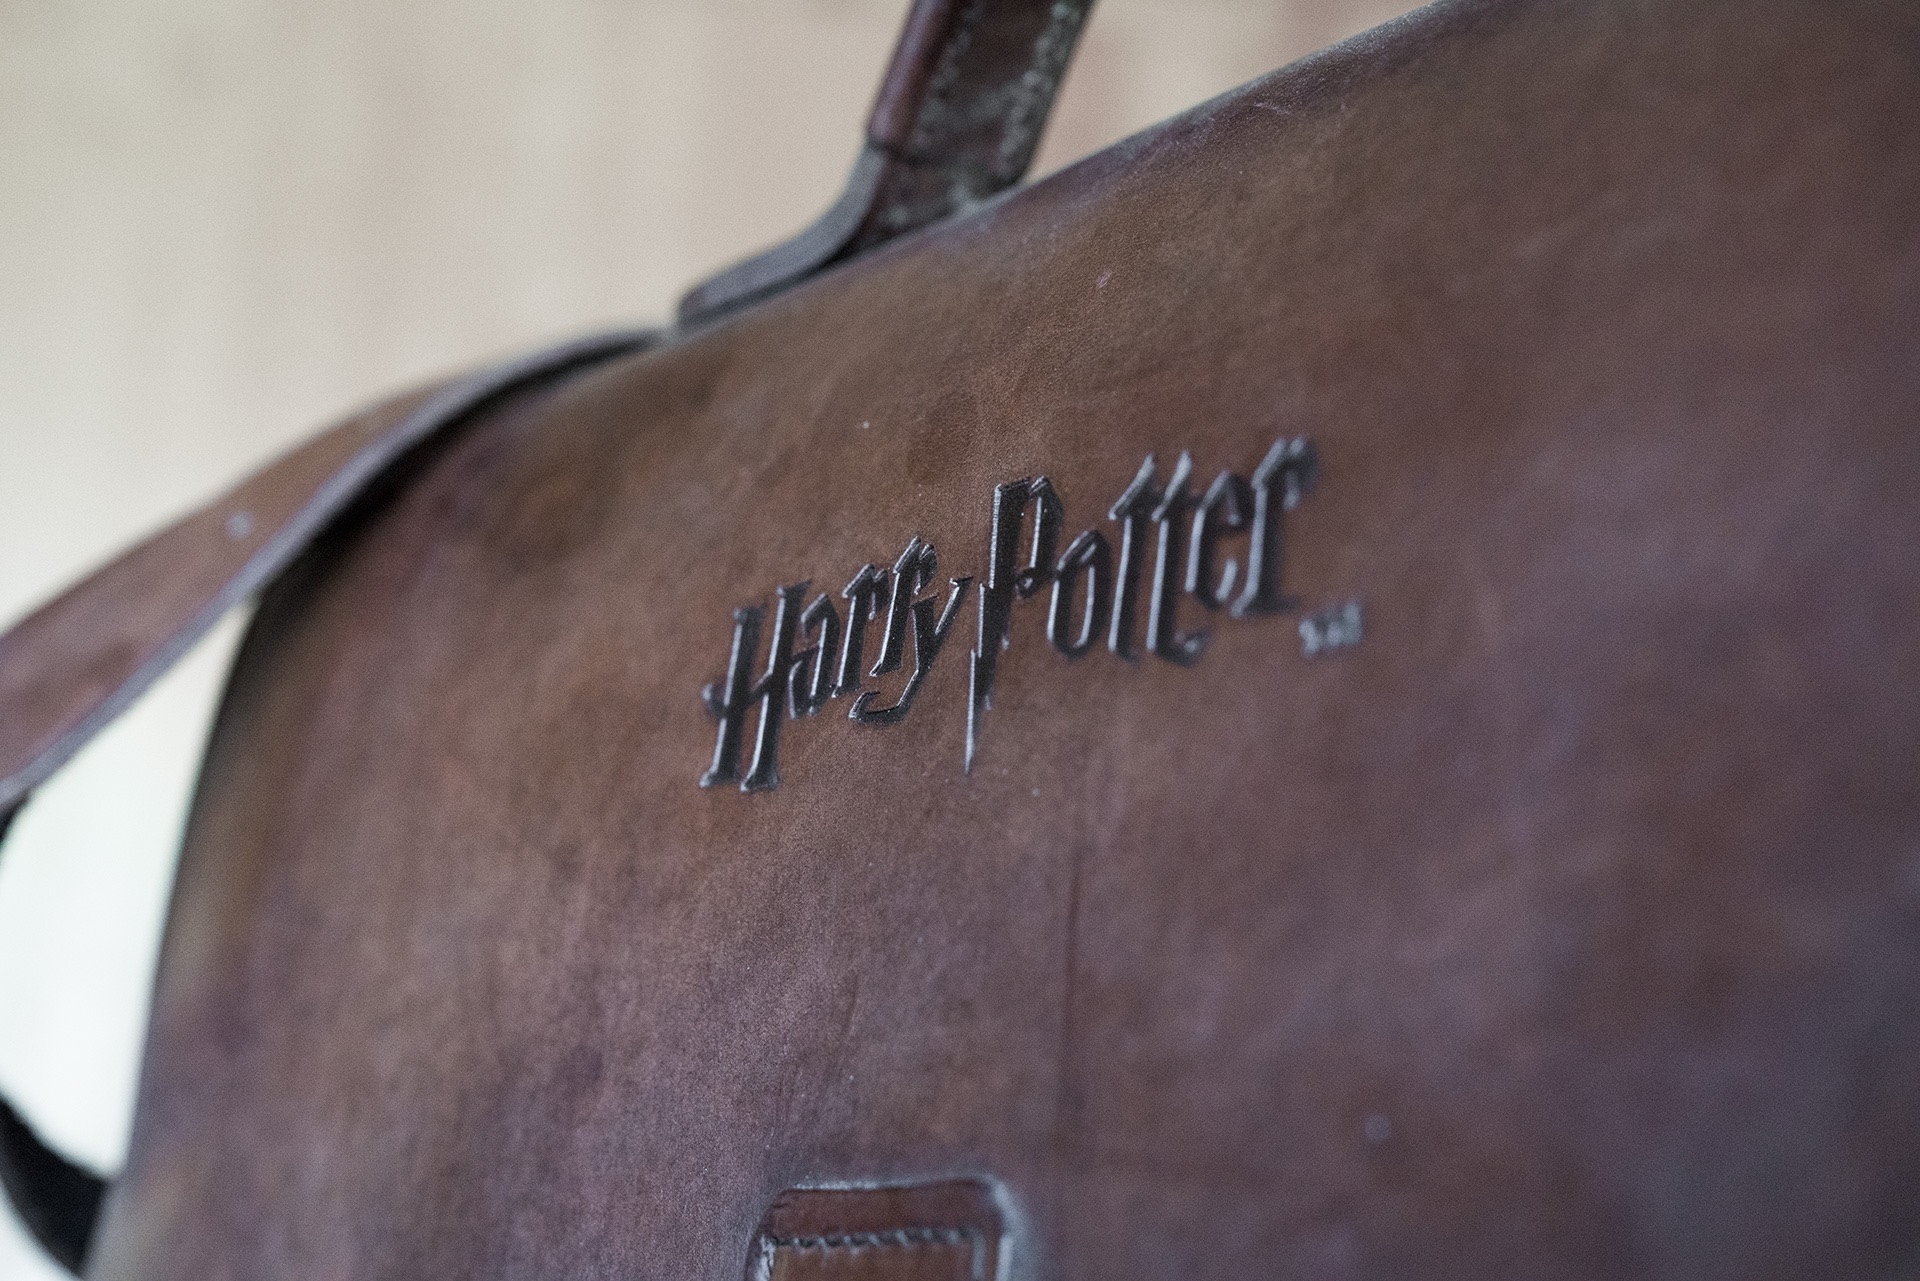 Harry Potter logo in leather satchel.